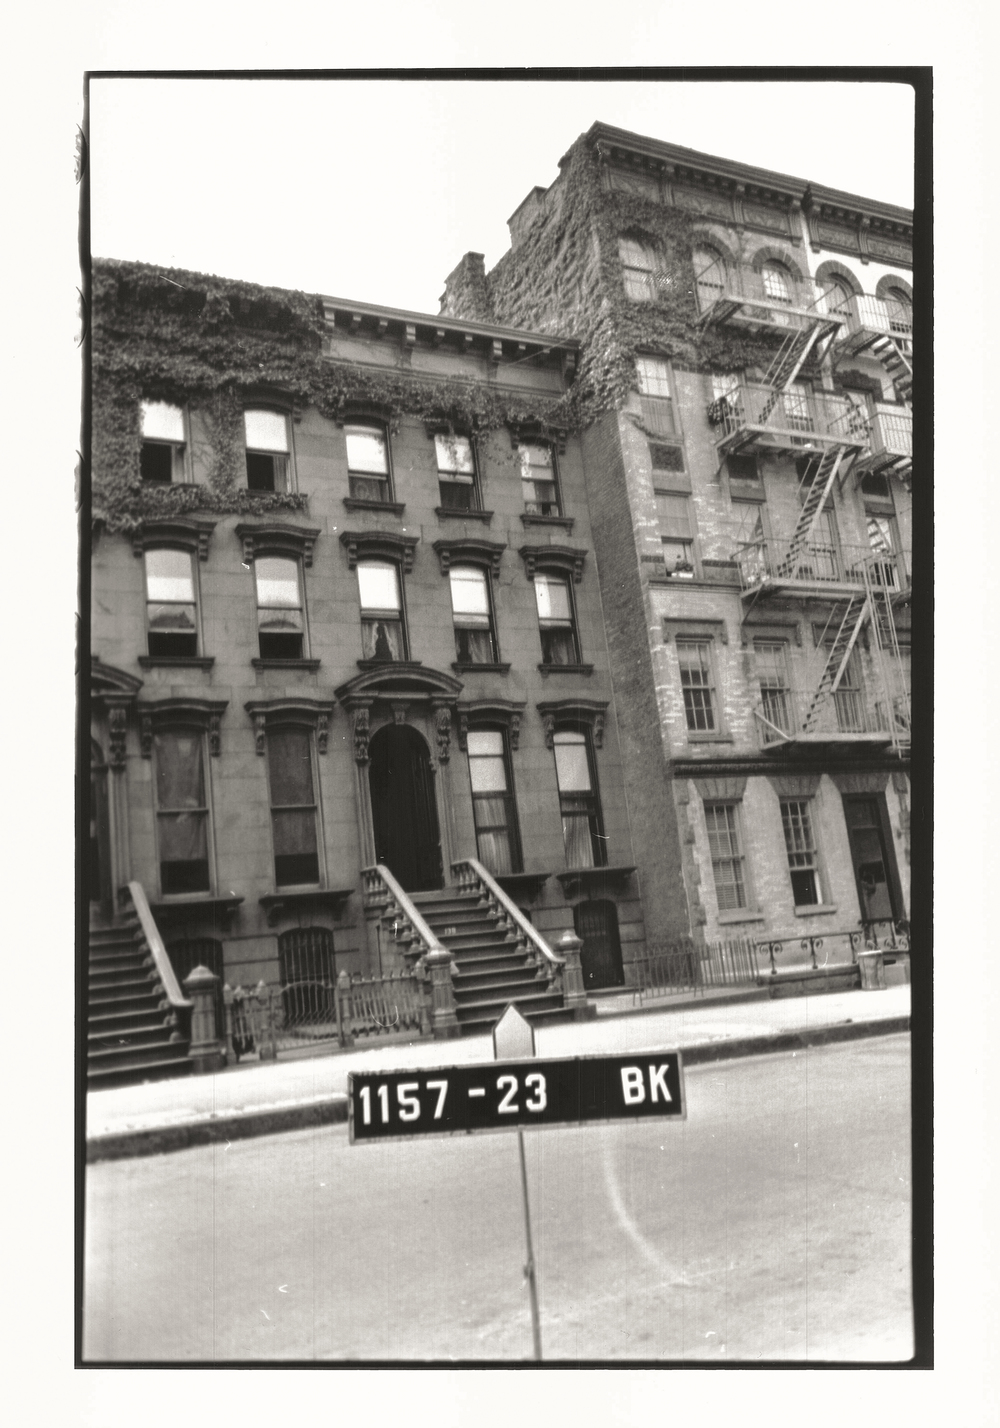 The brownstone as it existed in the early 1940s